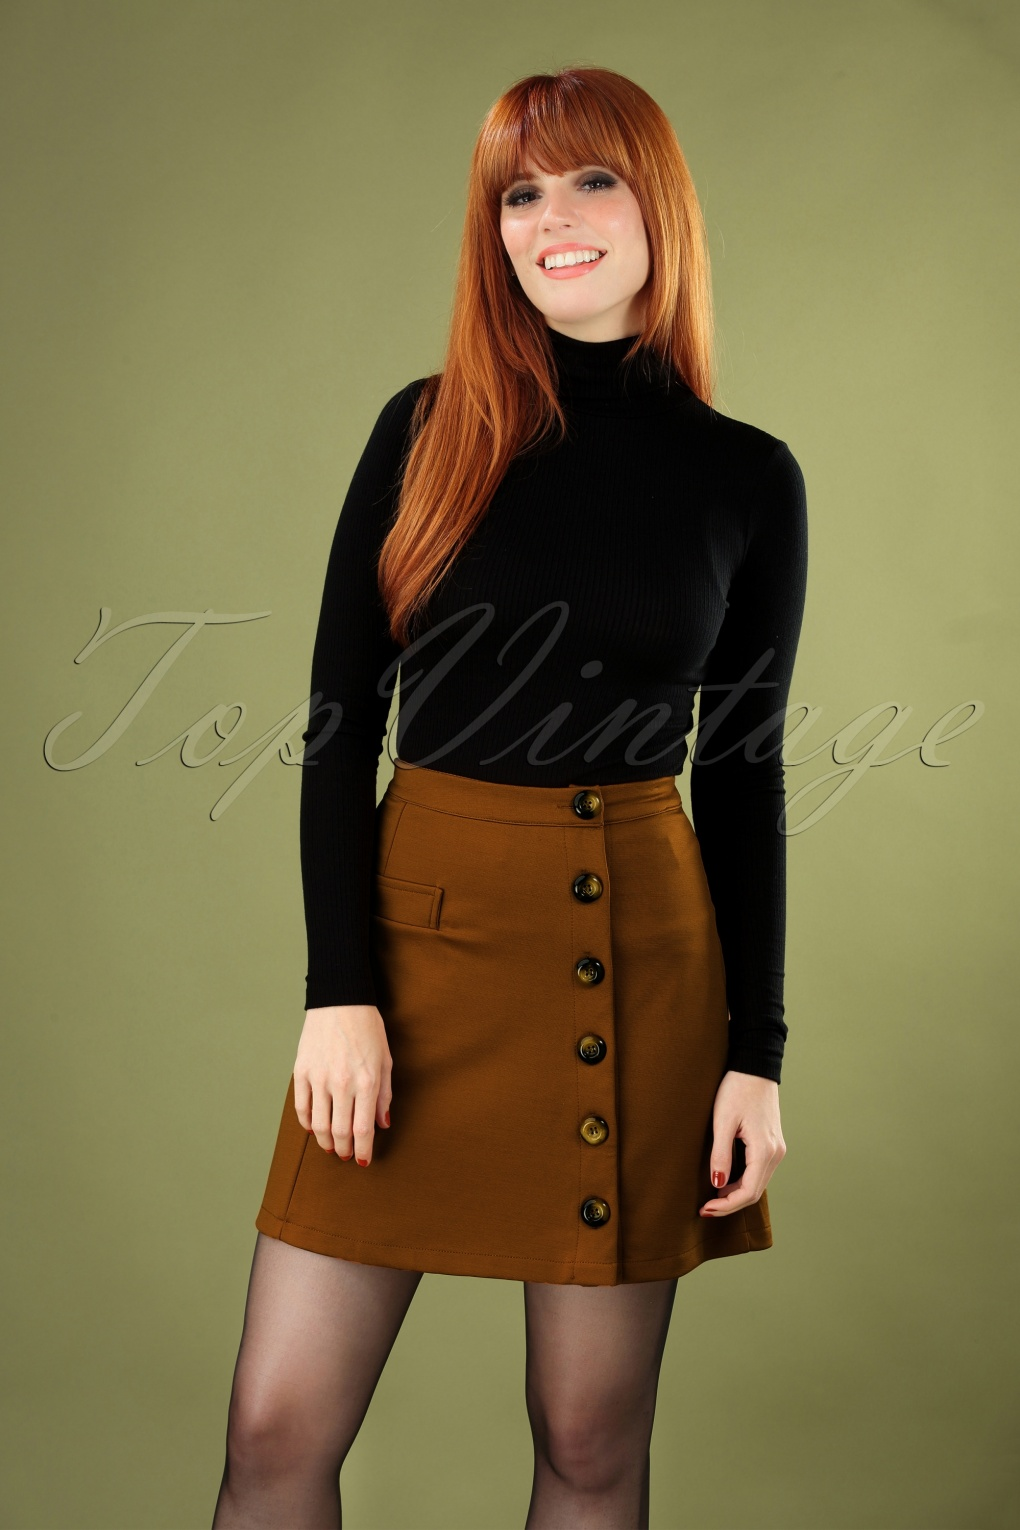 Retro Skirts: Vintage, Pencil, Circle, & Plus Sizes 60s Beatrice Skirt in Tobacco £24.67 AT vintagedancer.com